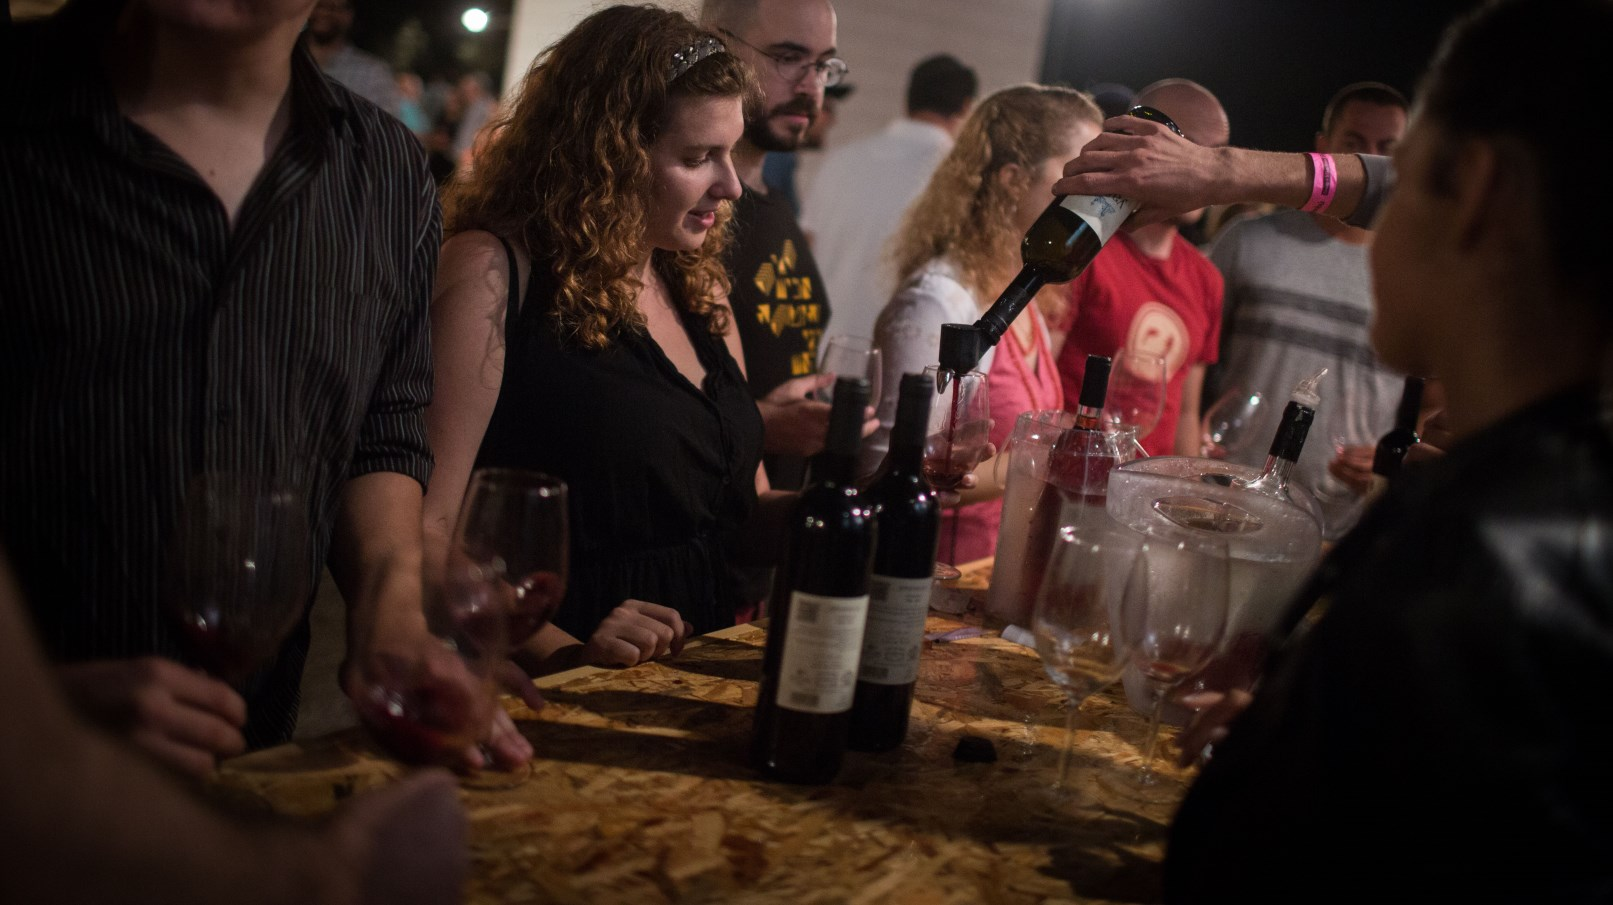 Israelis enjoying the annual Wine Festival at the Israel Museum in Jerusalem, September 6, 2016. Photo by Hadas Parush/FLASH90